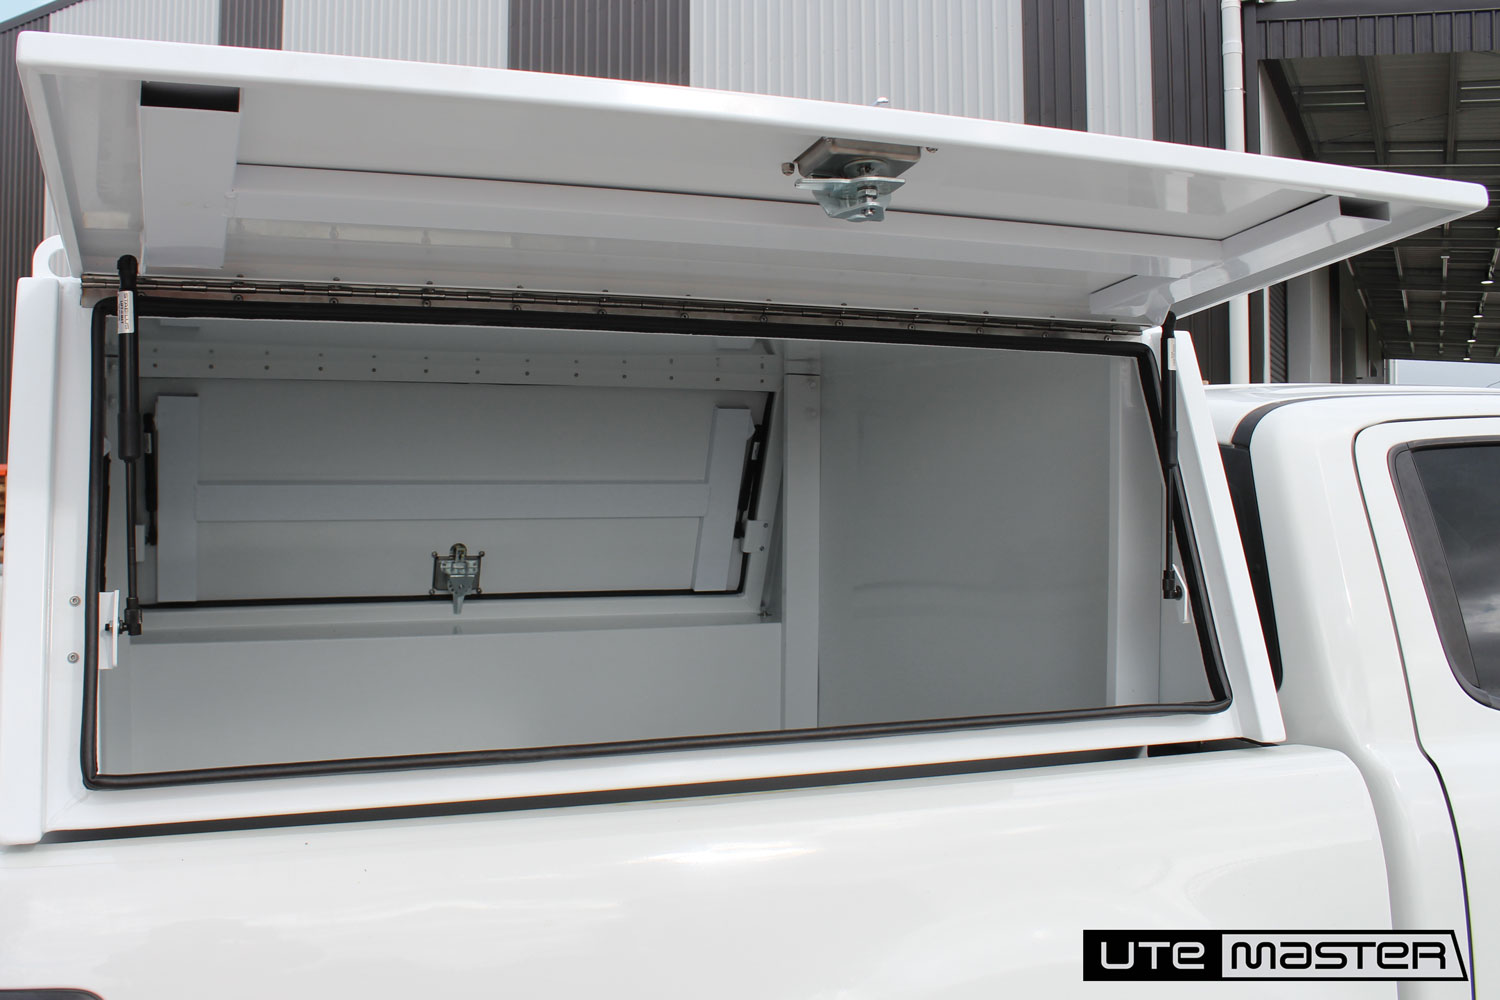 Lift Off Toolbox to suit Removable Toolbox by Utemaster Lift off service body commercial